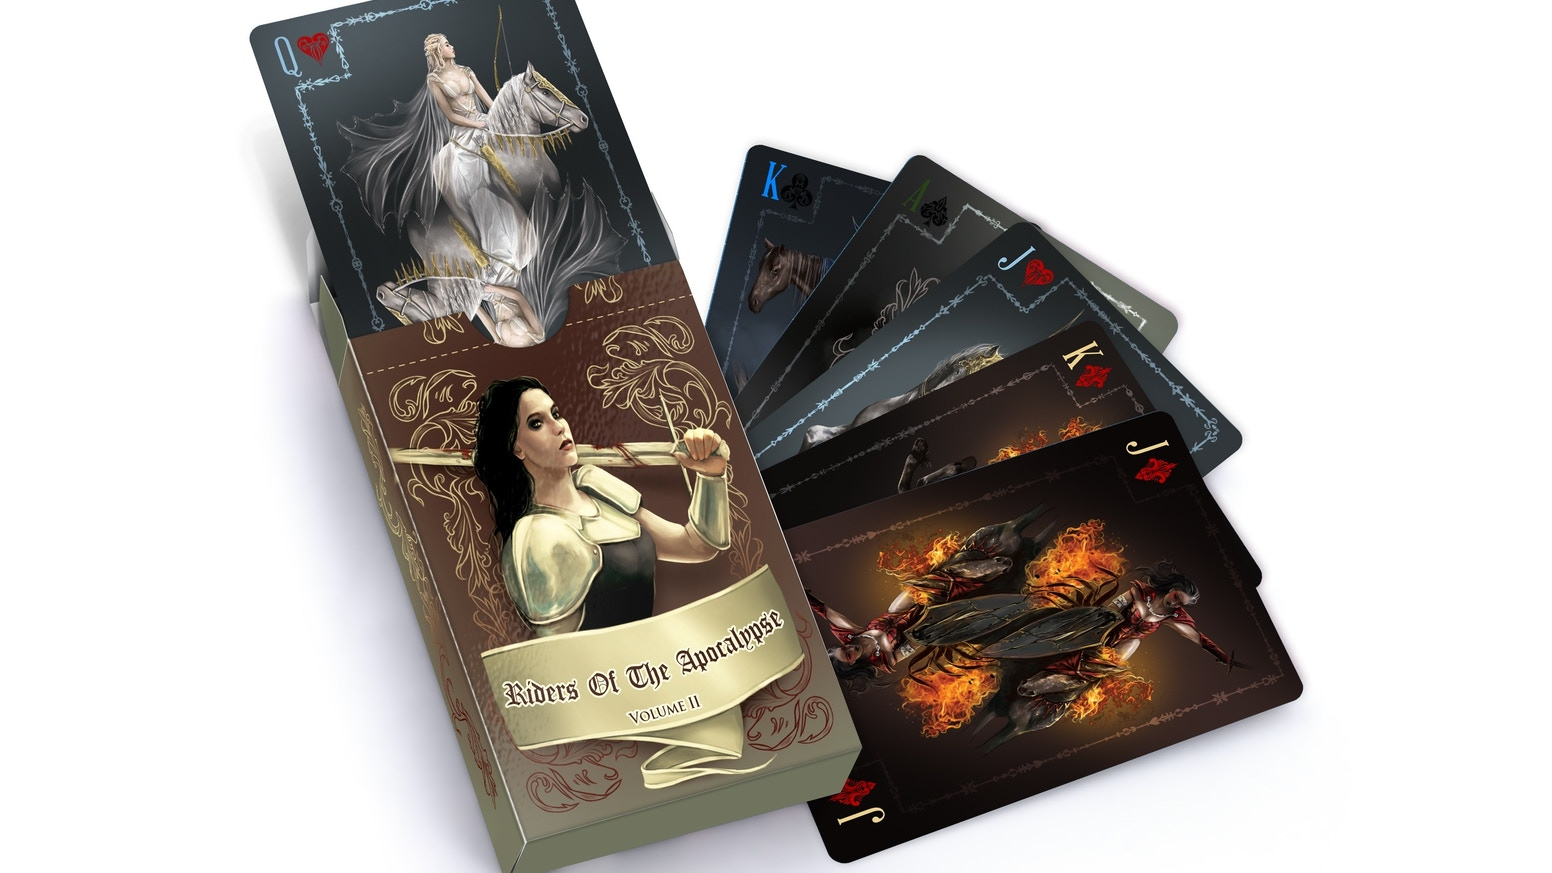 Ace Collectables latest deck of cards. Volume 2 of The Riders of the apocalypse unite in one beautifully illustrated deck.